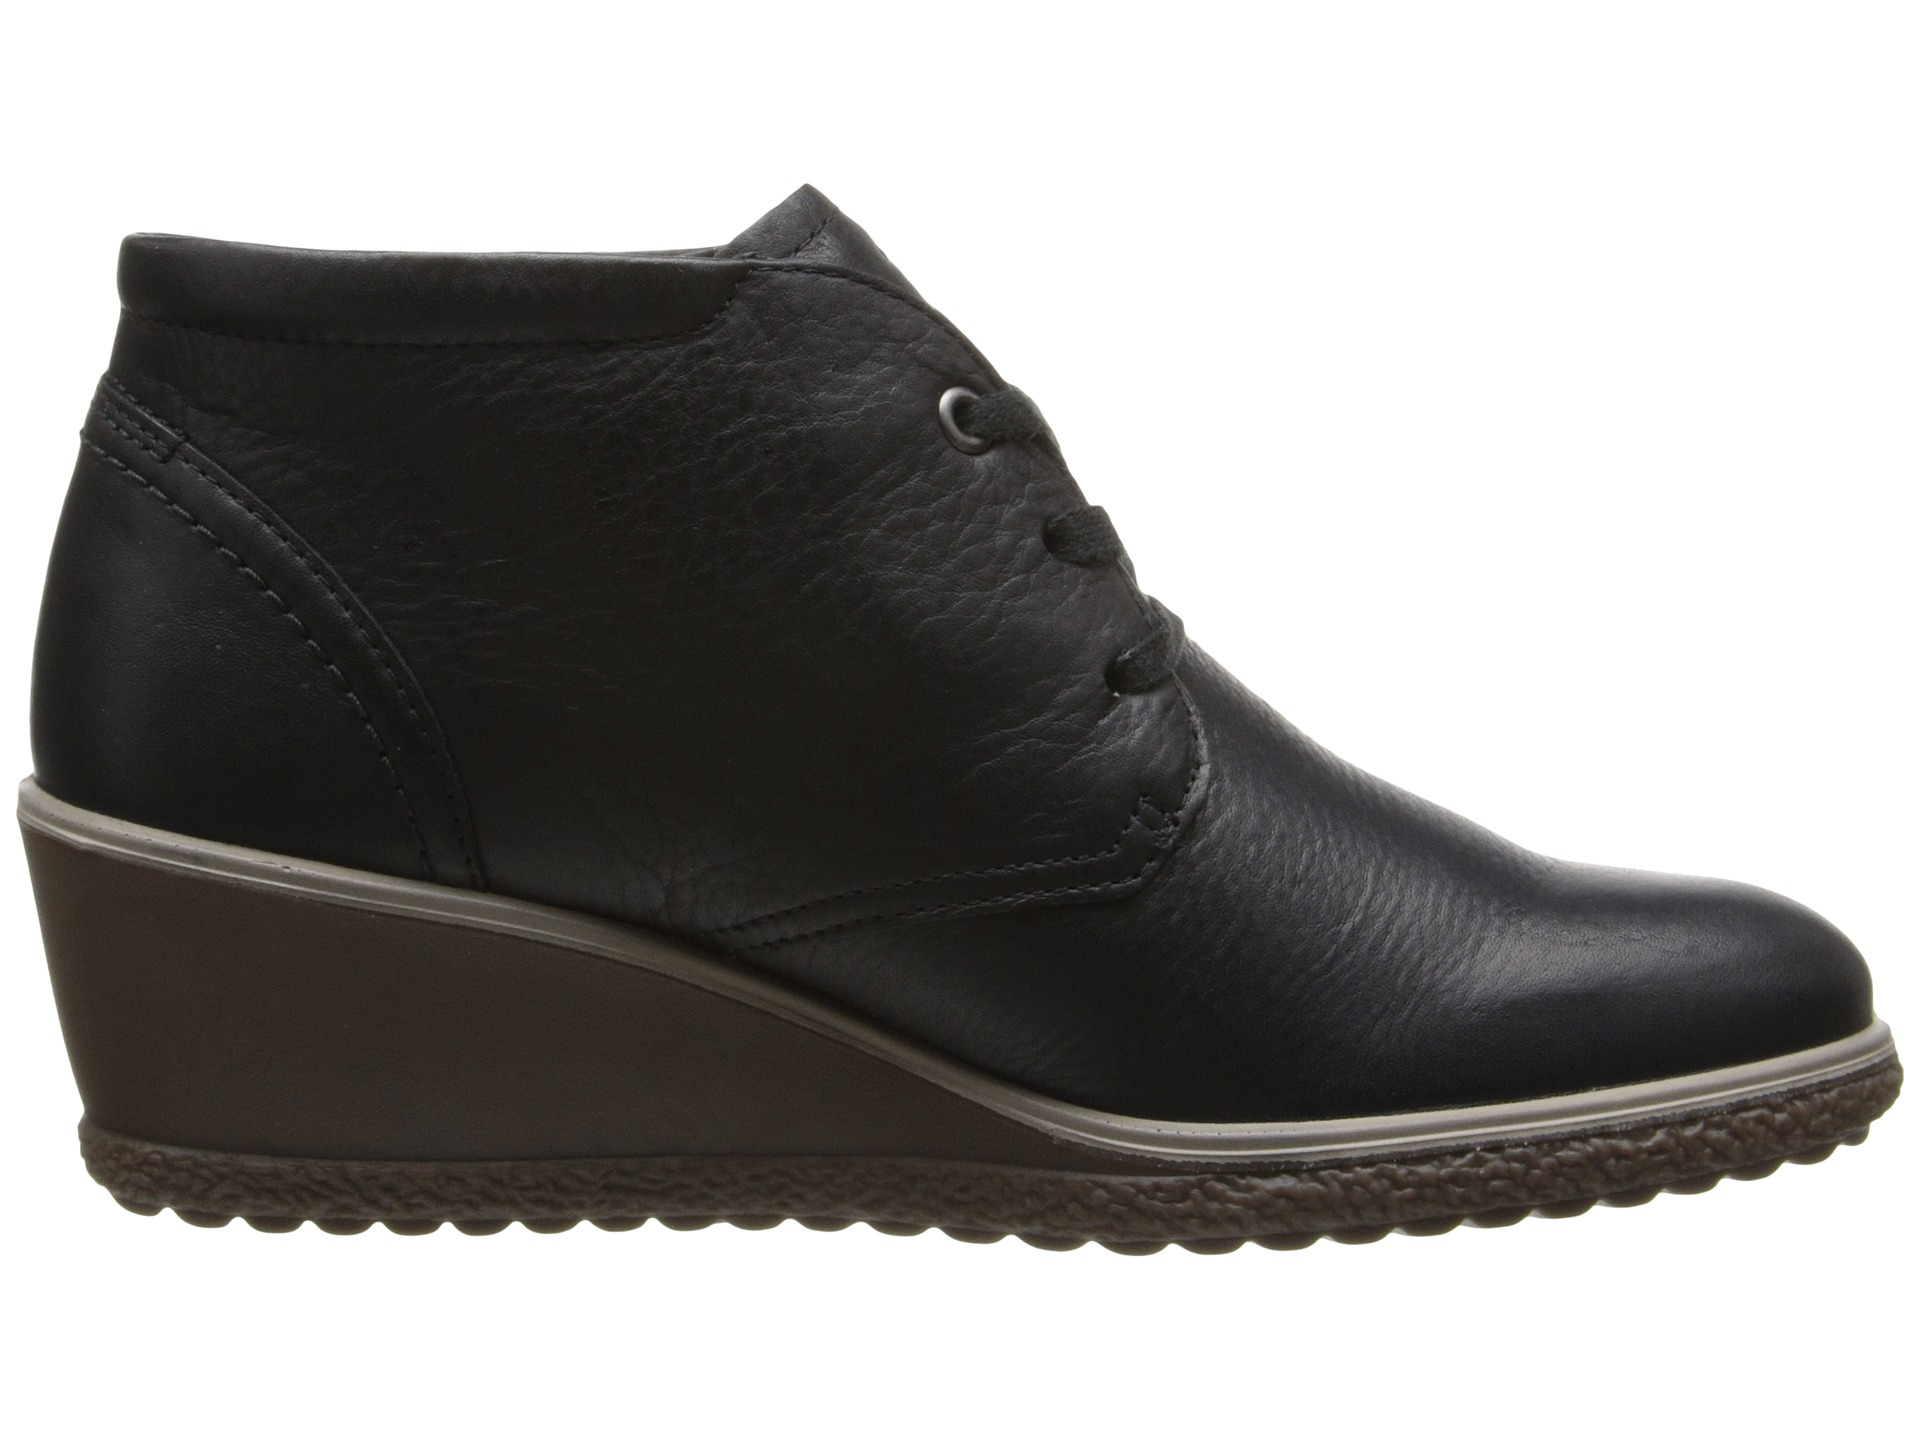 a085b54d5ff9 Lyst - Ecco Camilla Wedge Ankle Boot in Black